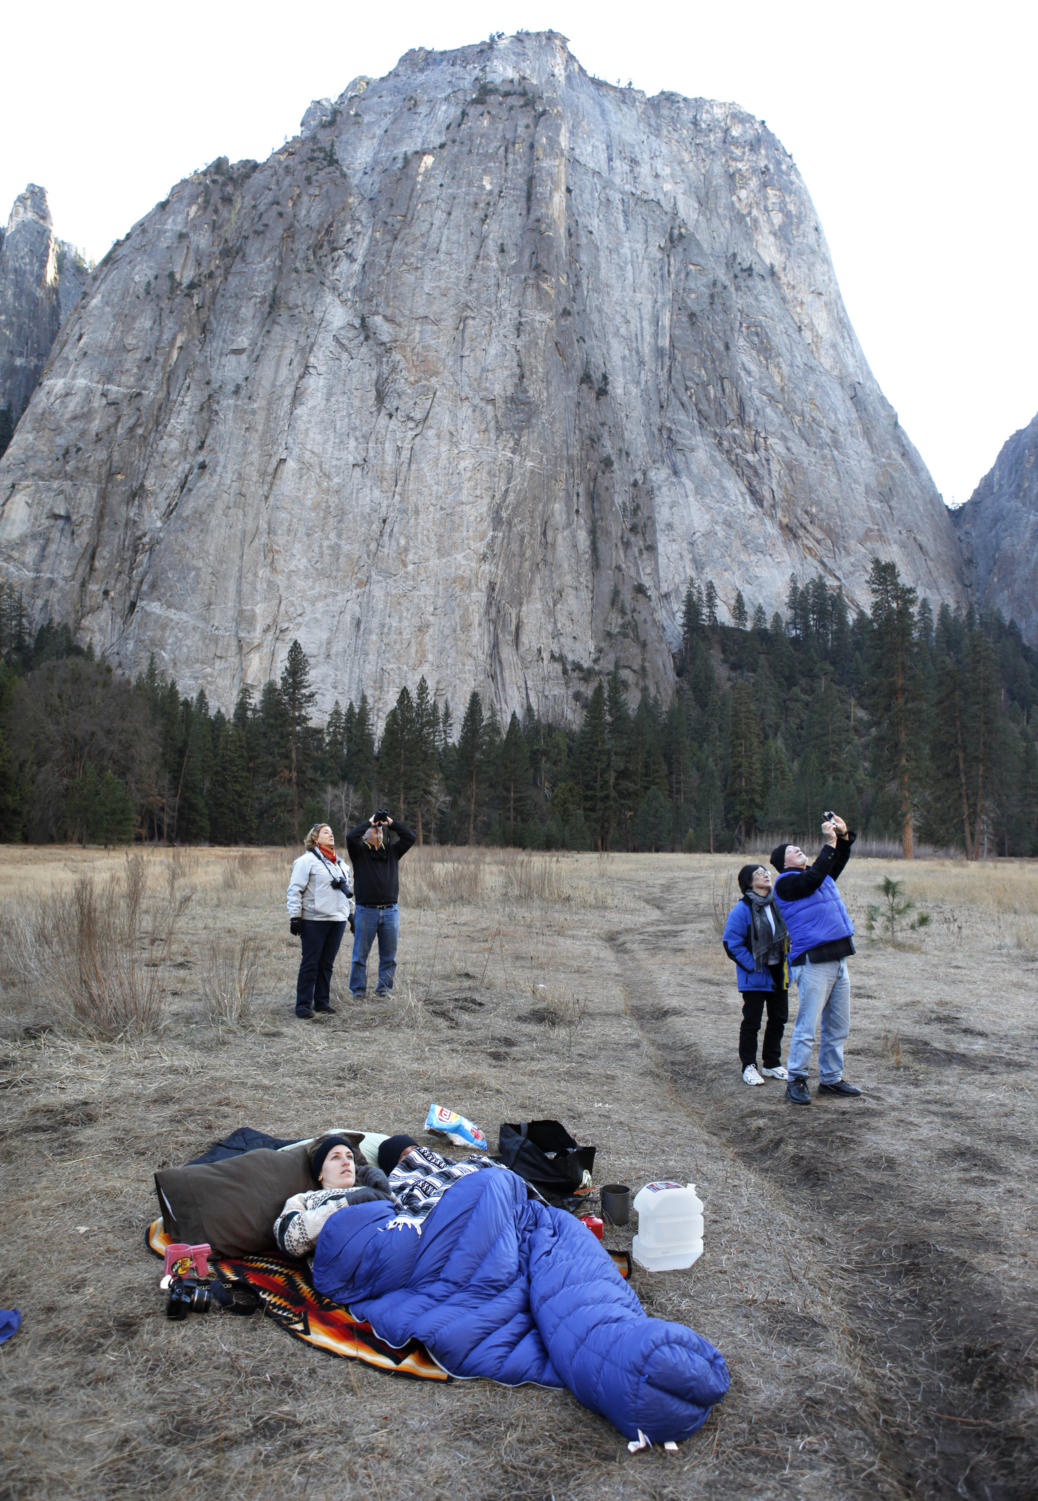 Onlookers watch climbers Kevin Jorgeson and Tommy Caldwell as they attempt to ascend the Dawn Wall of El Capitan on Jan. 13, 2015 in Yosemite National Park, Calif., which is the event on which the documentary is based (Patrick Tehan/Tribune News Service).